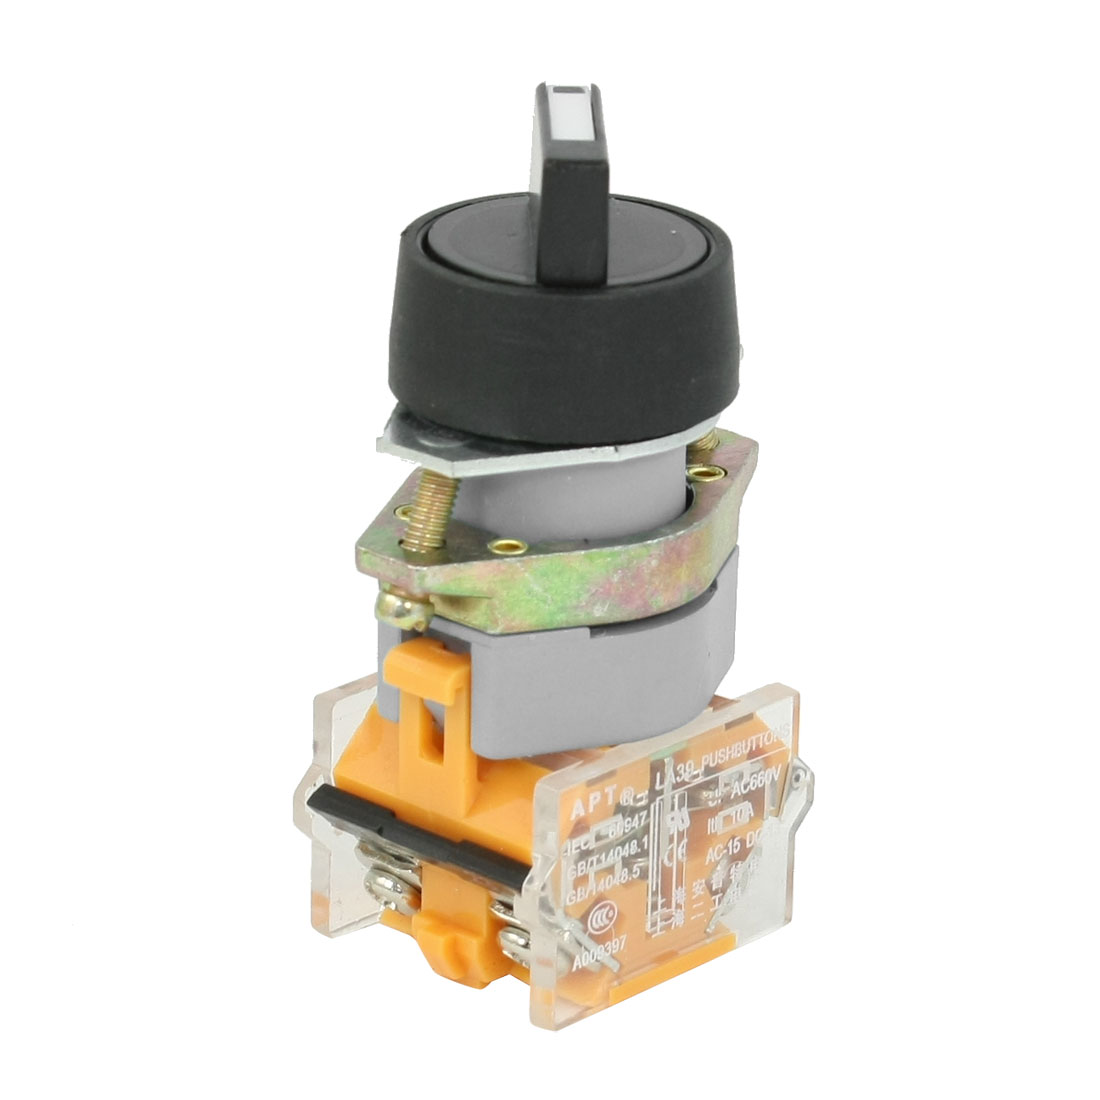 AC 660V 10A 1NO 1NC DPST 2 Position Rotary Selector Latching Push Button Switch